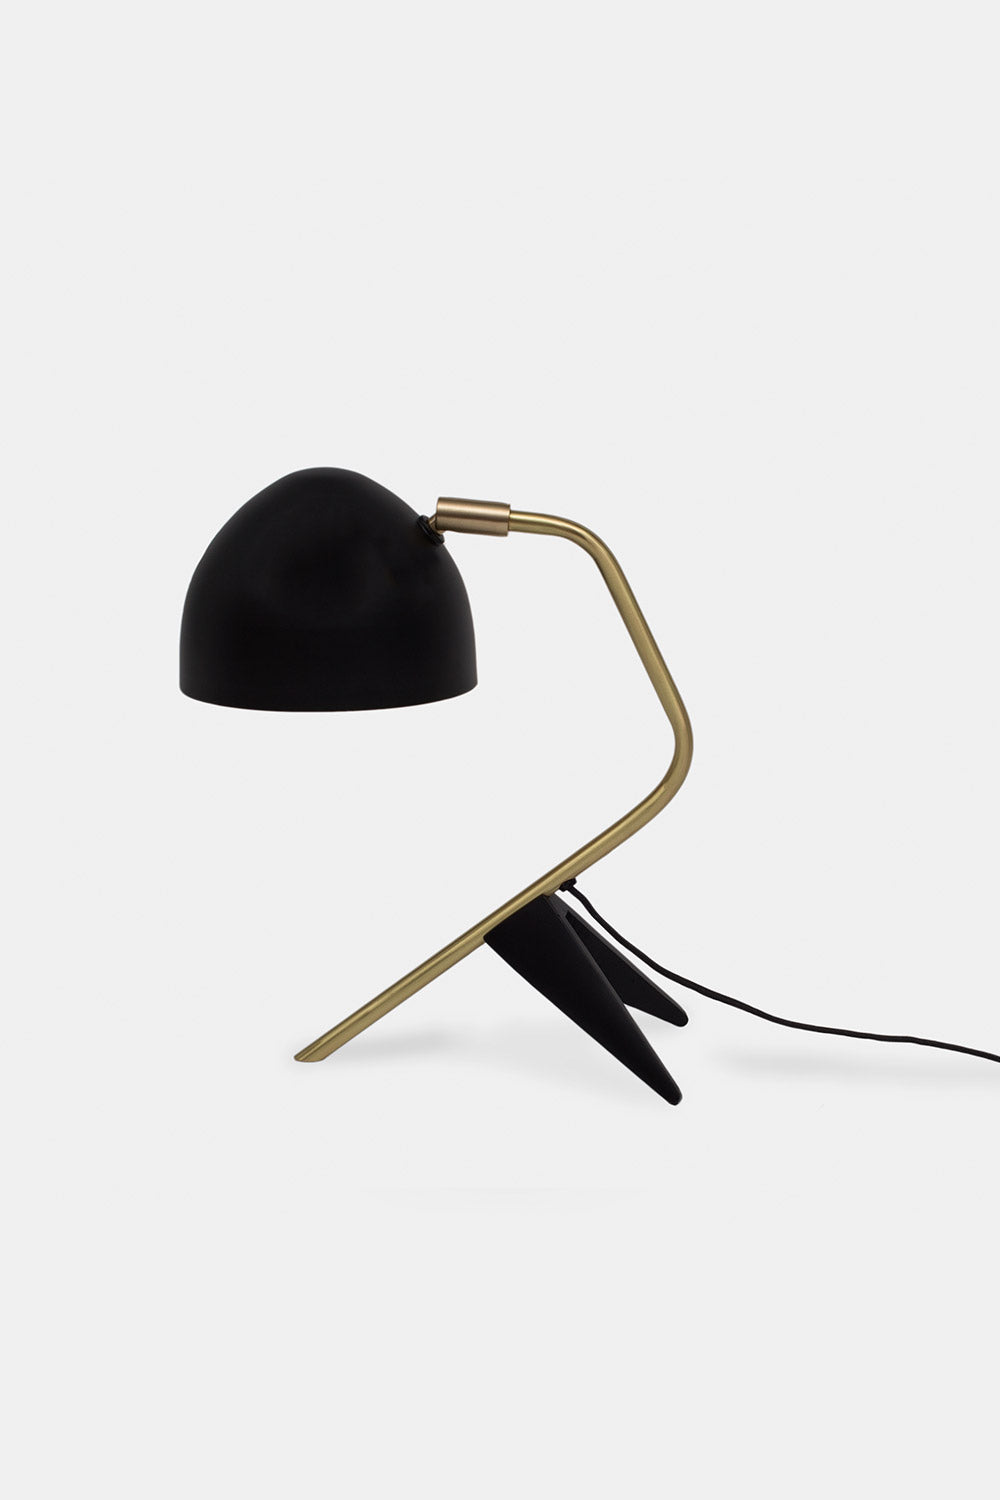 Studio 1 Table lamp, Mat black/brass